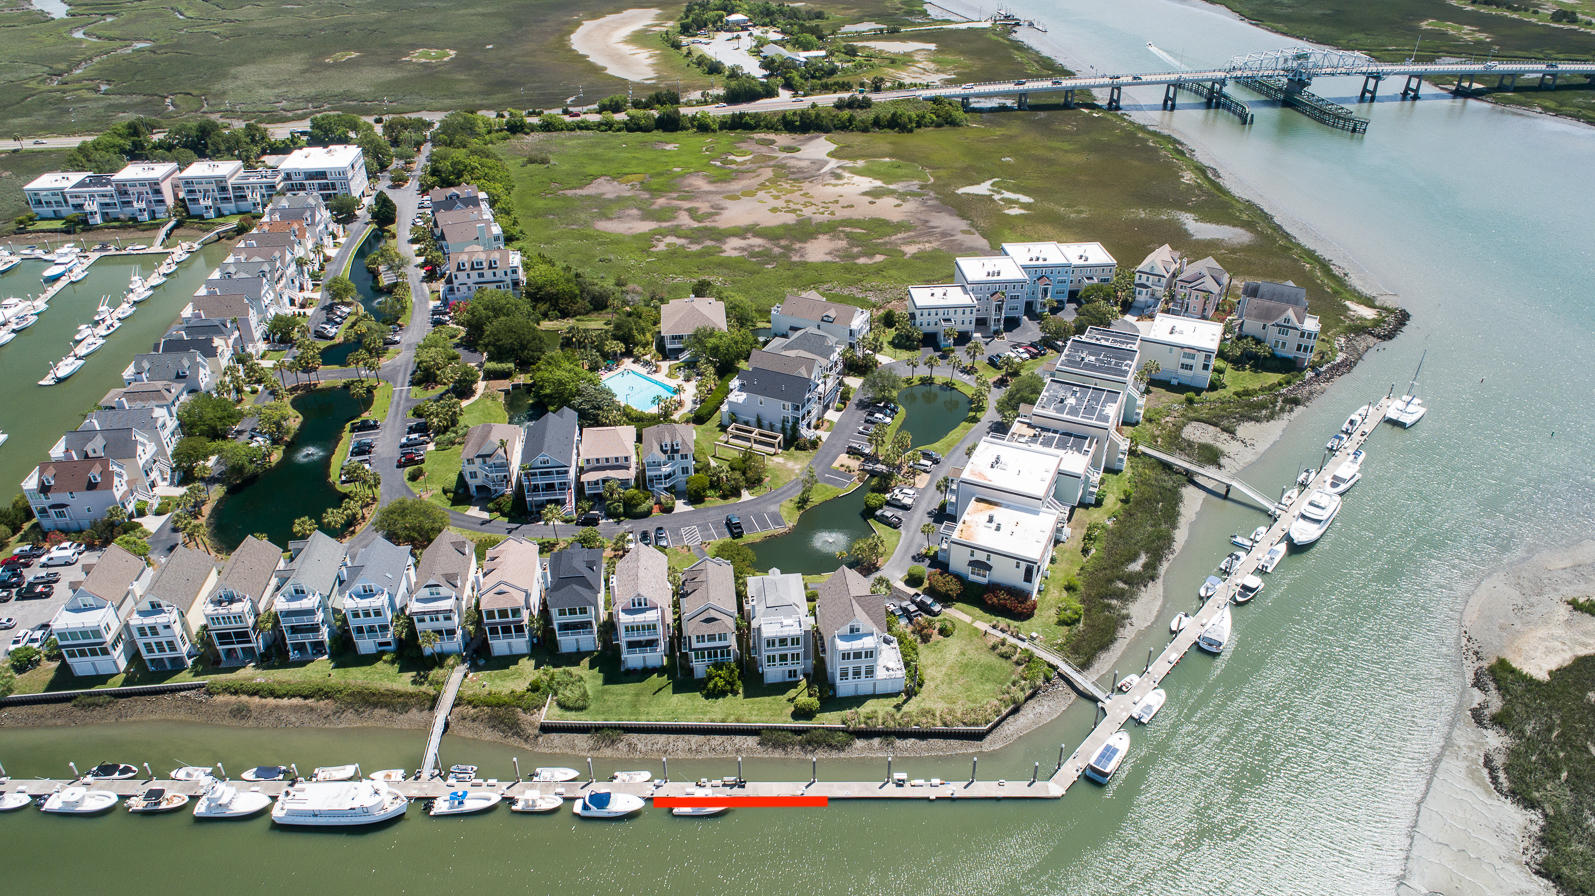 Tolers Cove Homes For Sale - B-4 & B-5 Tolers Cove Marina 70ft + Home, Mount Pleasant, SC - 52